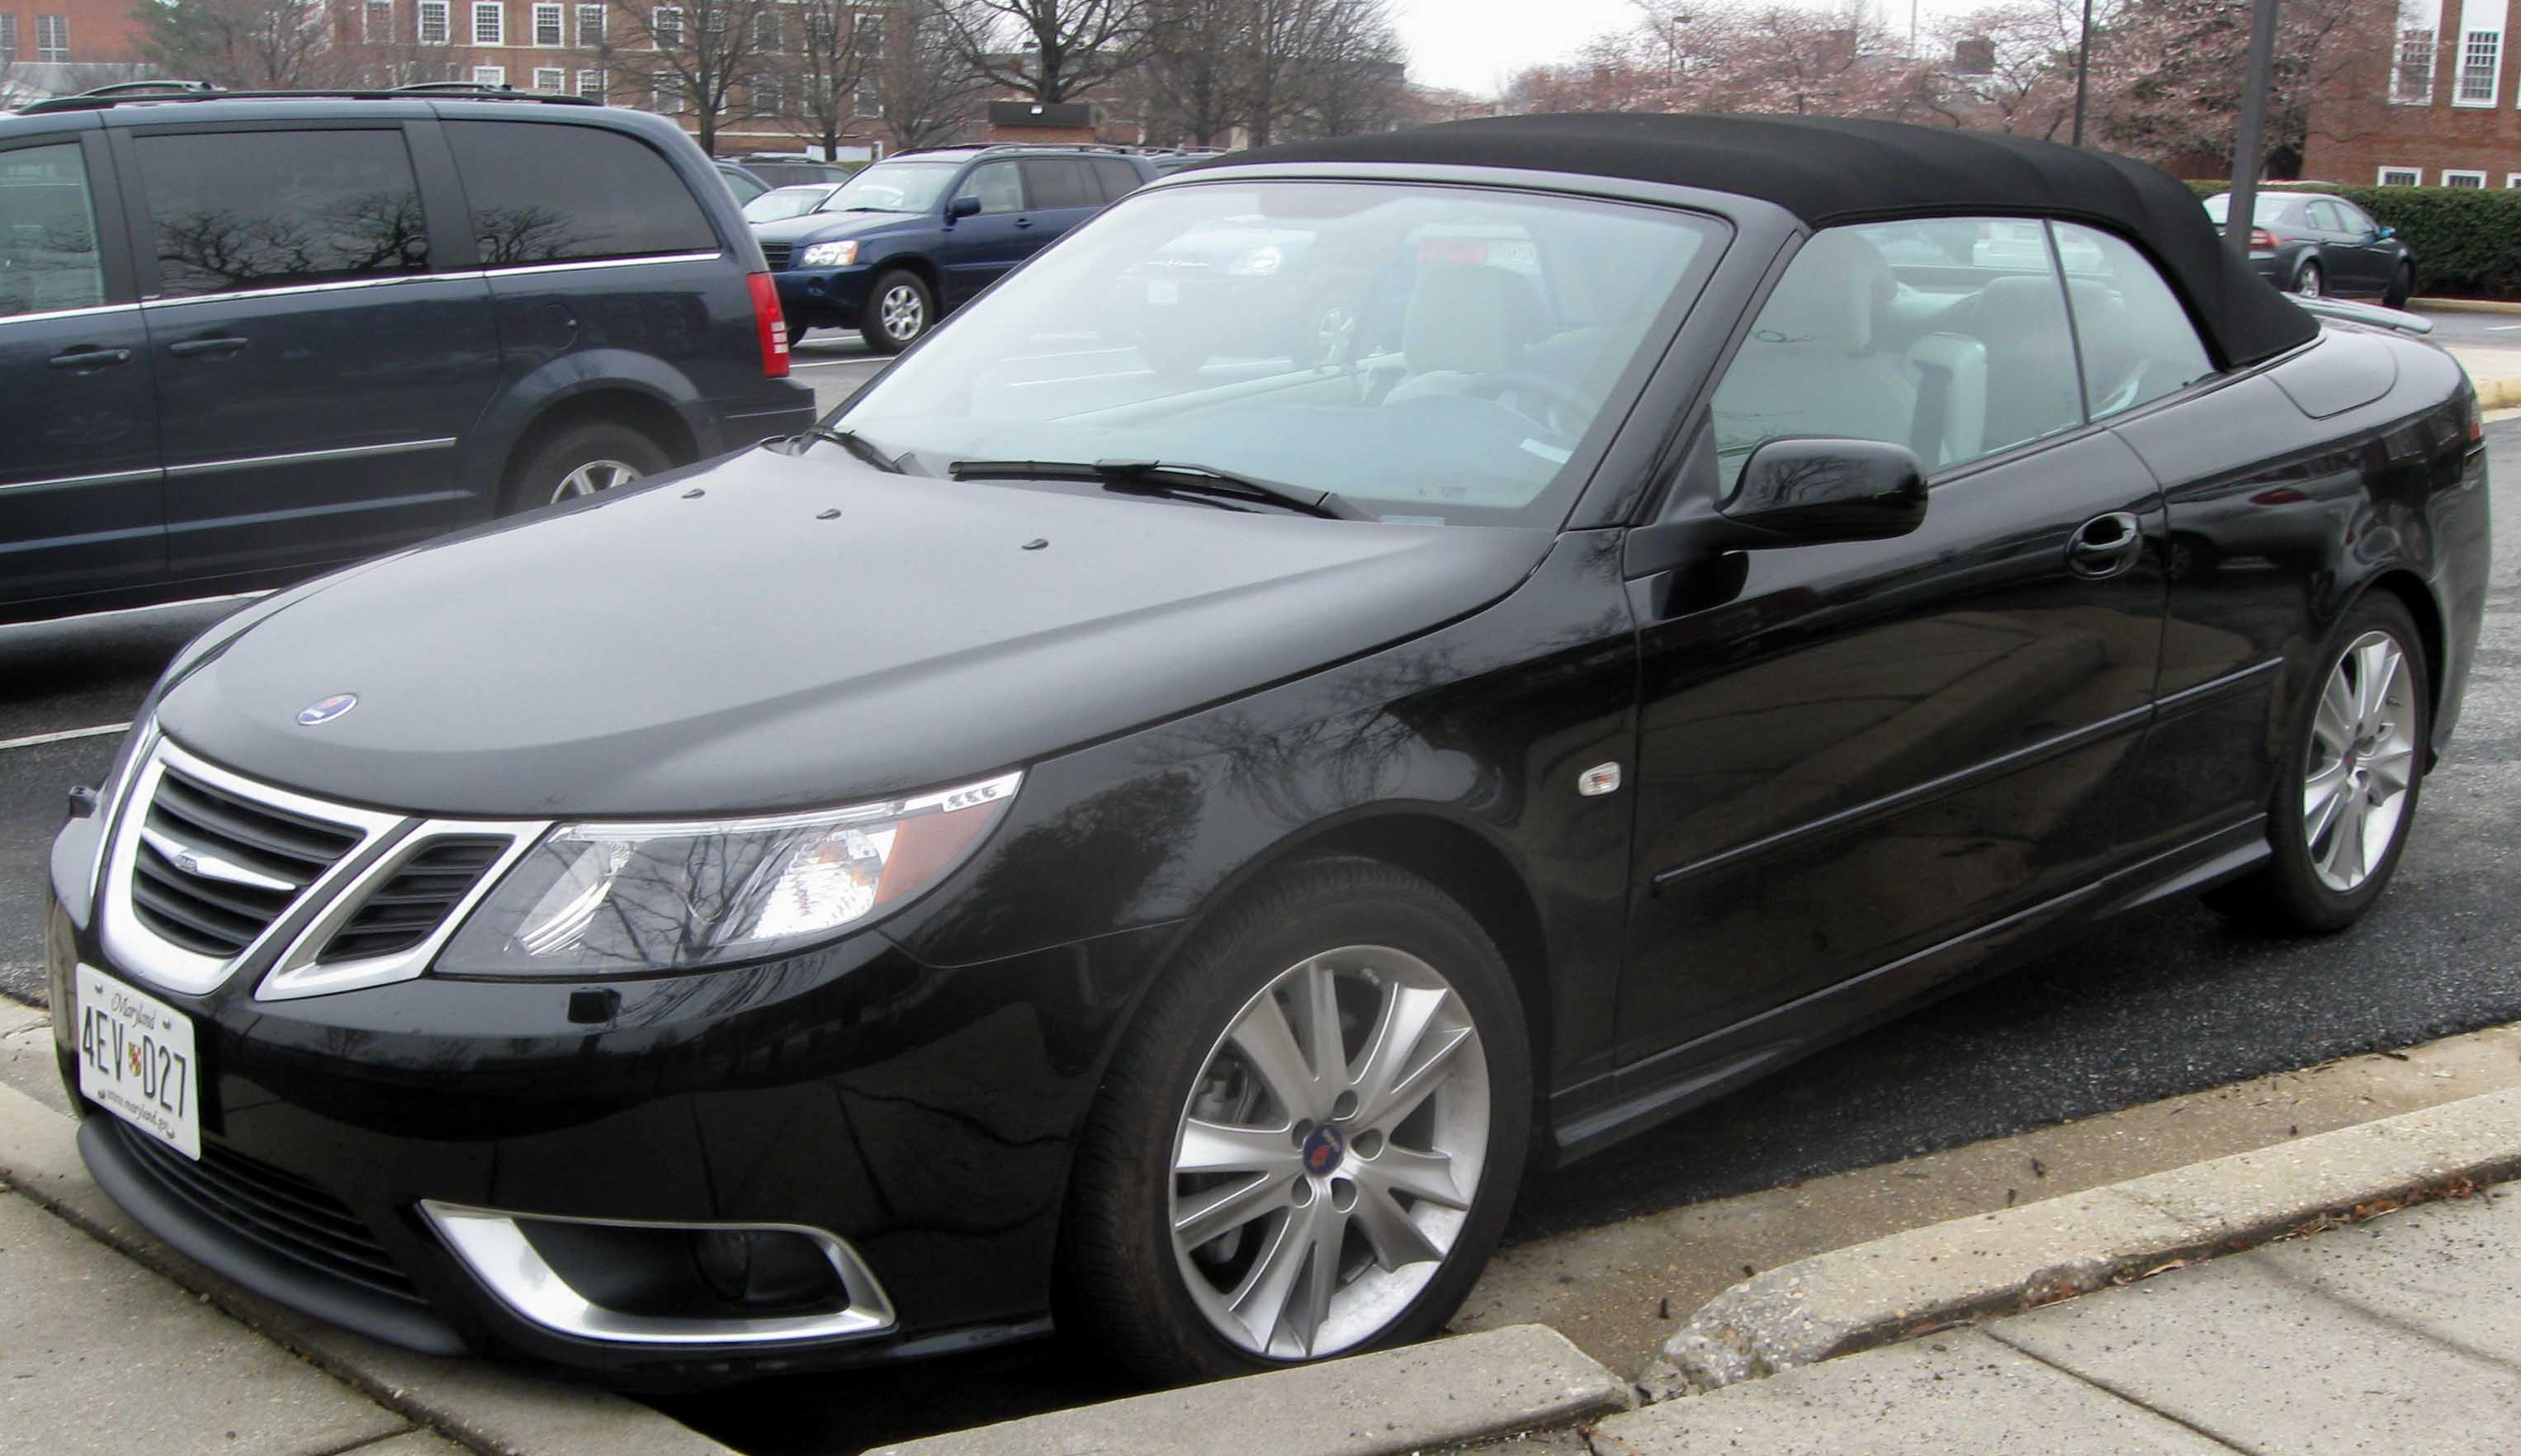 saab 9 3 cabriolet. Black Bedroom Furniture Sets. Home Design Ideas